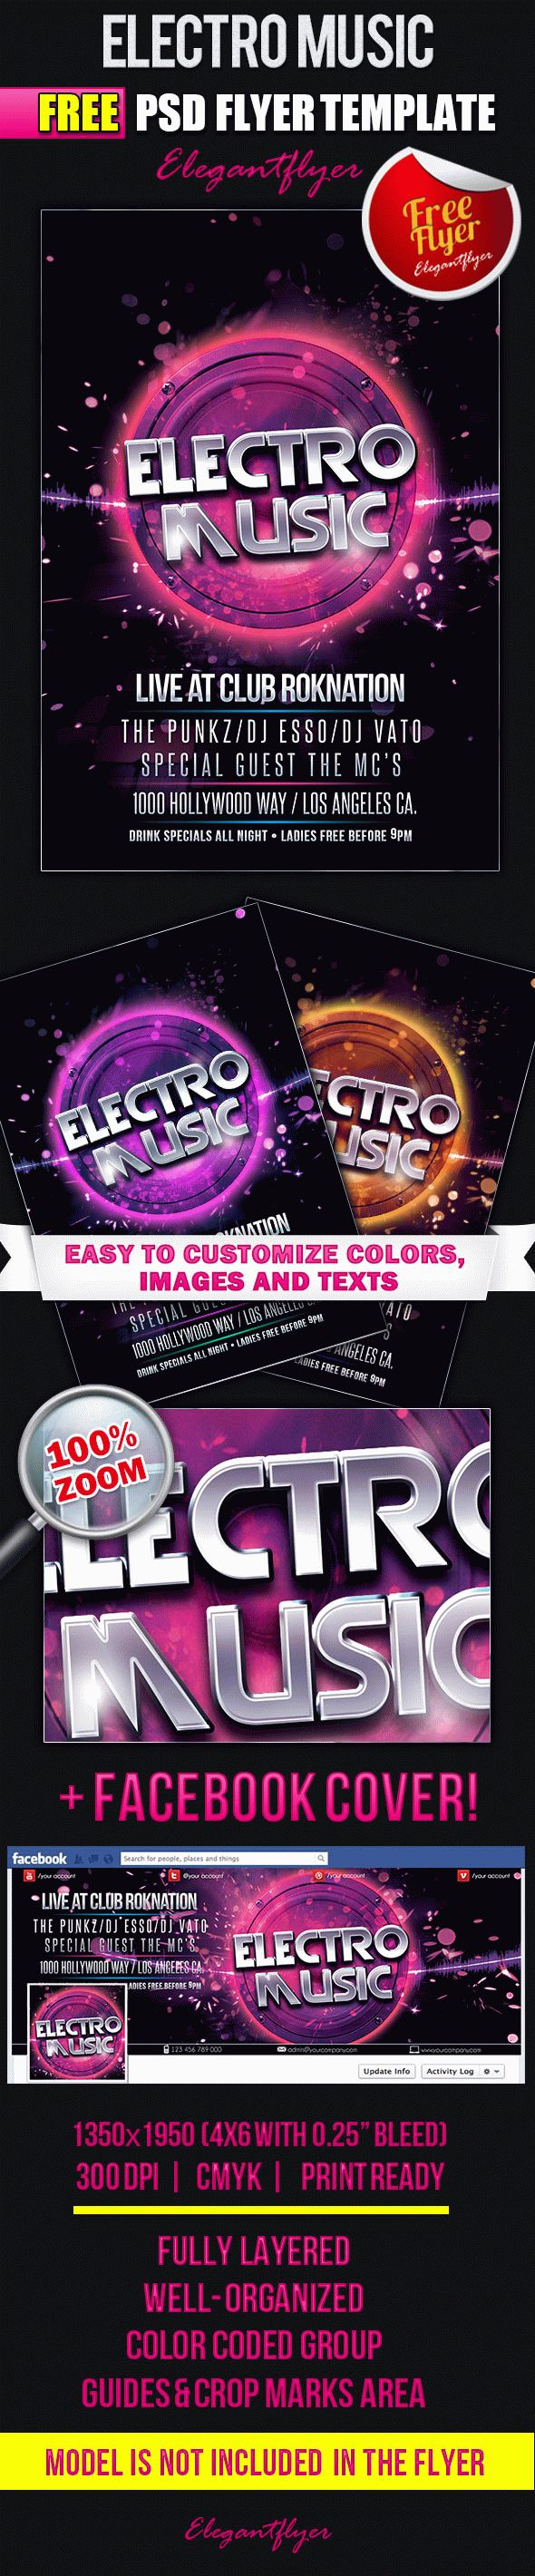 Electro Dance Music Poster